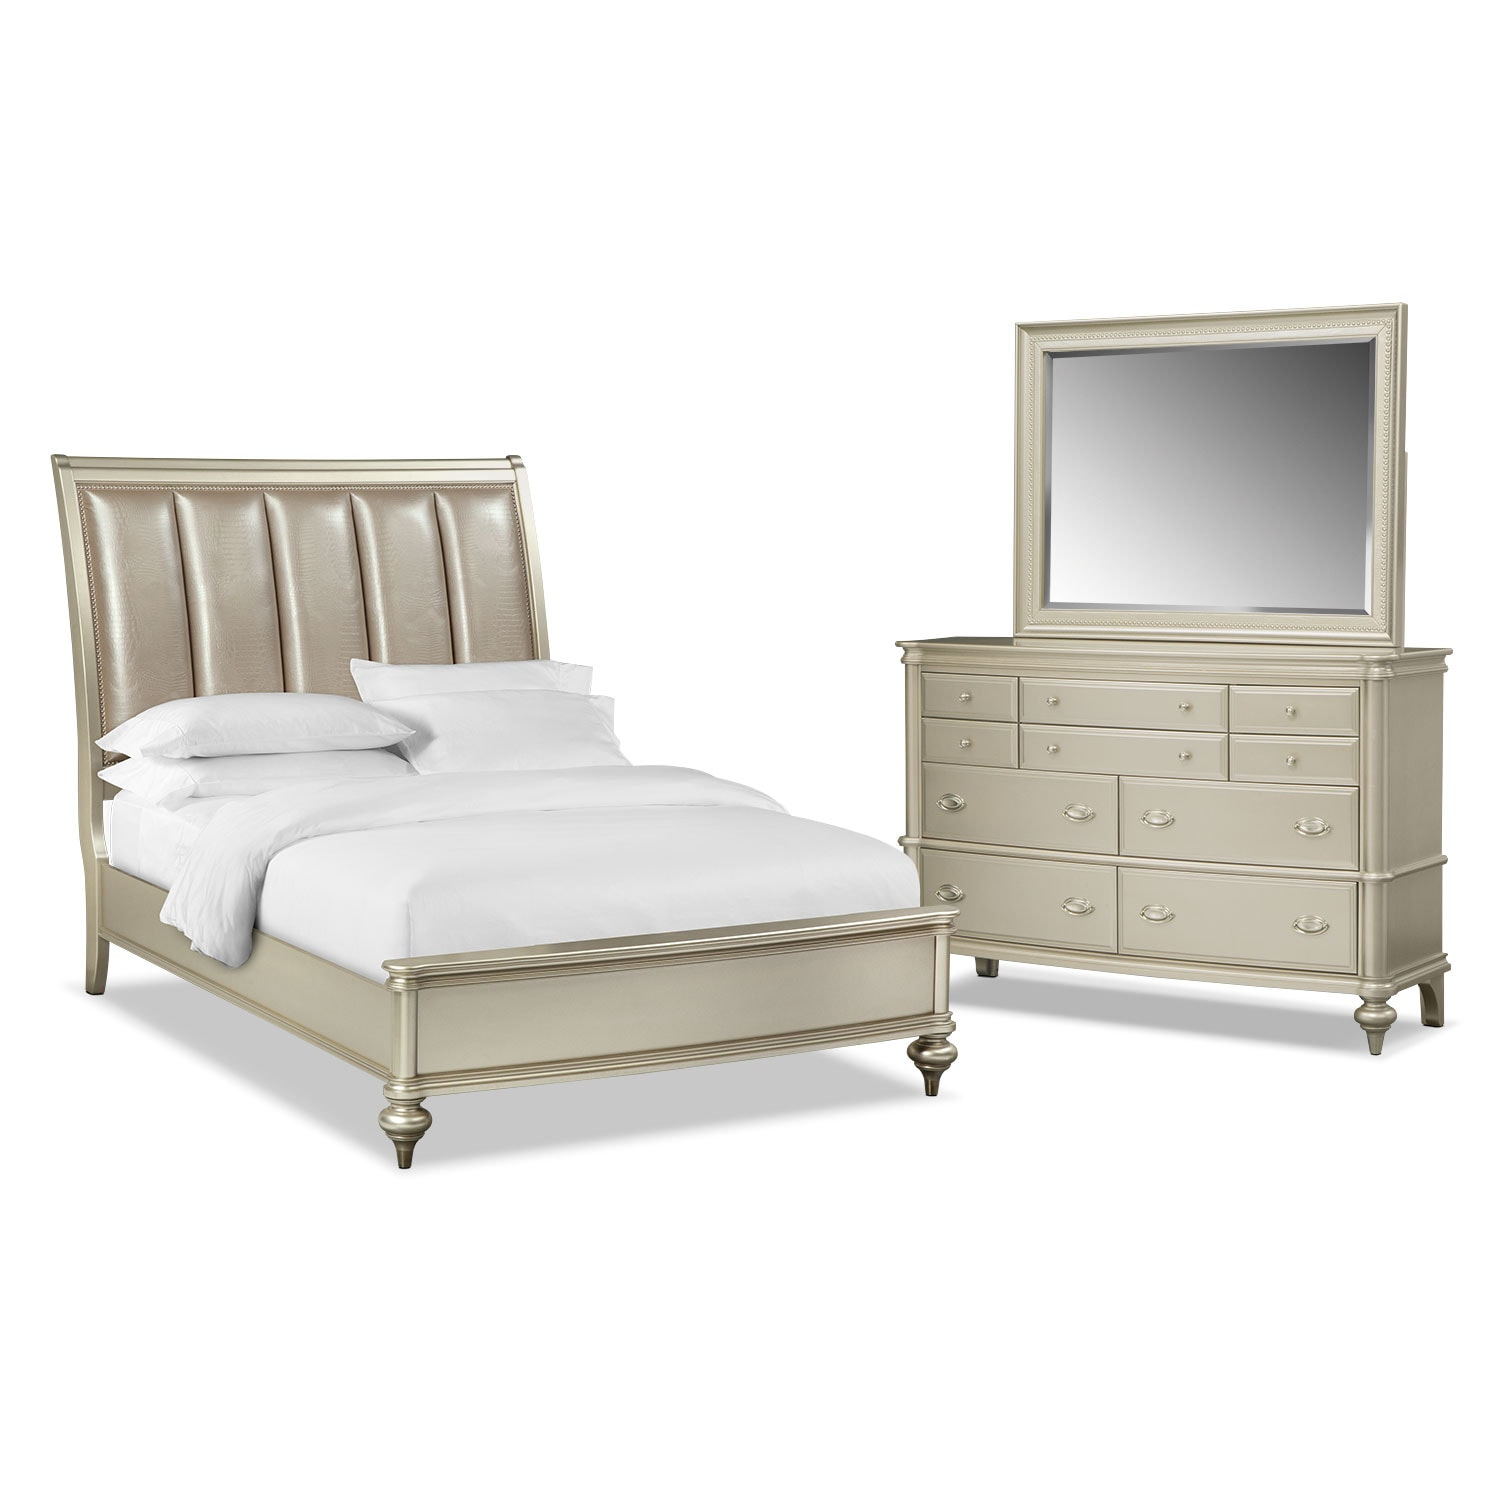 Esquire 5-Piece Queen Bedroom Set - Platinum